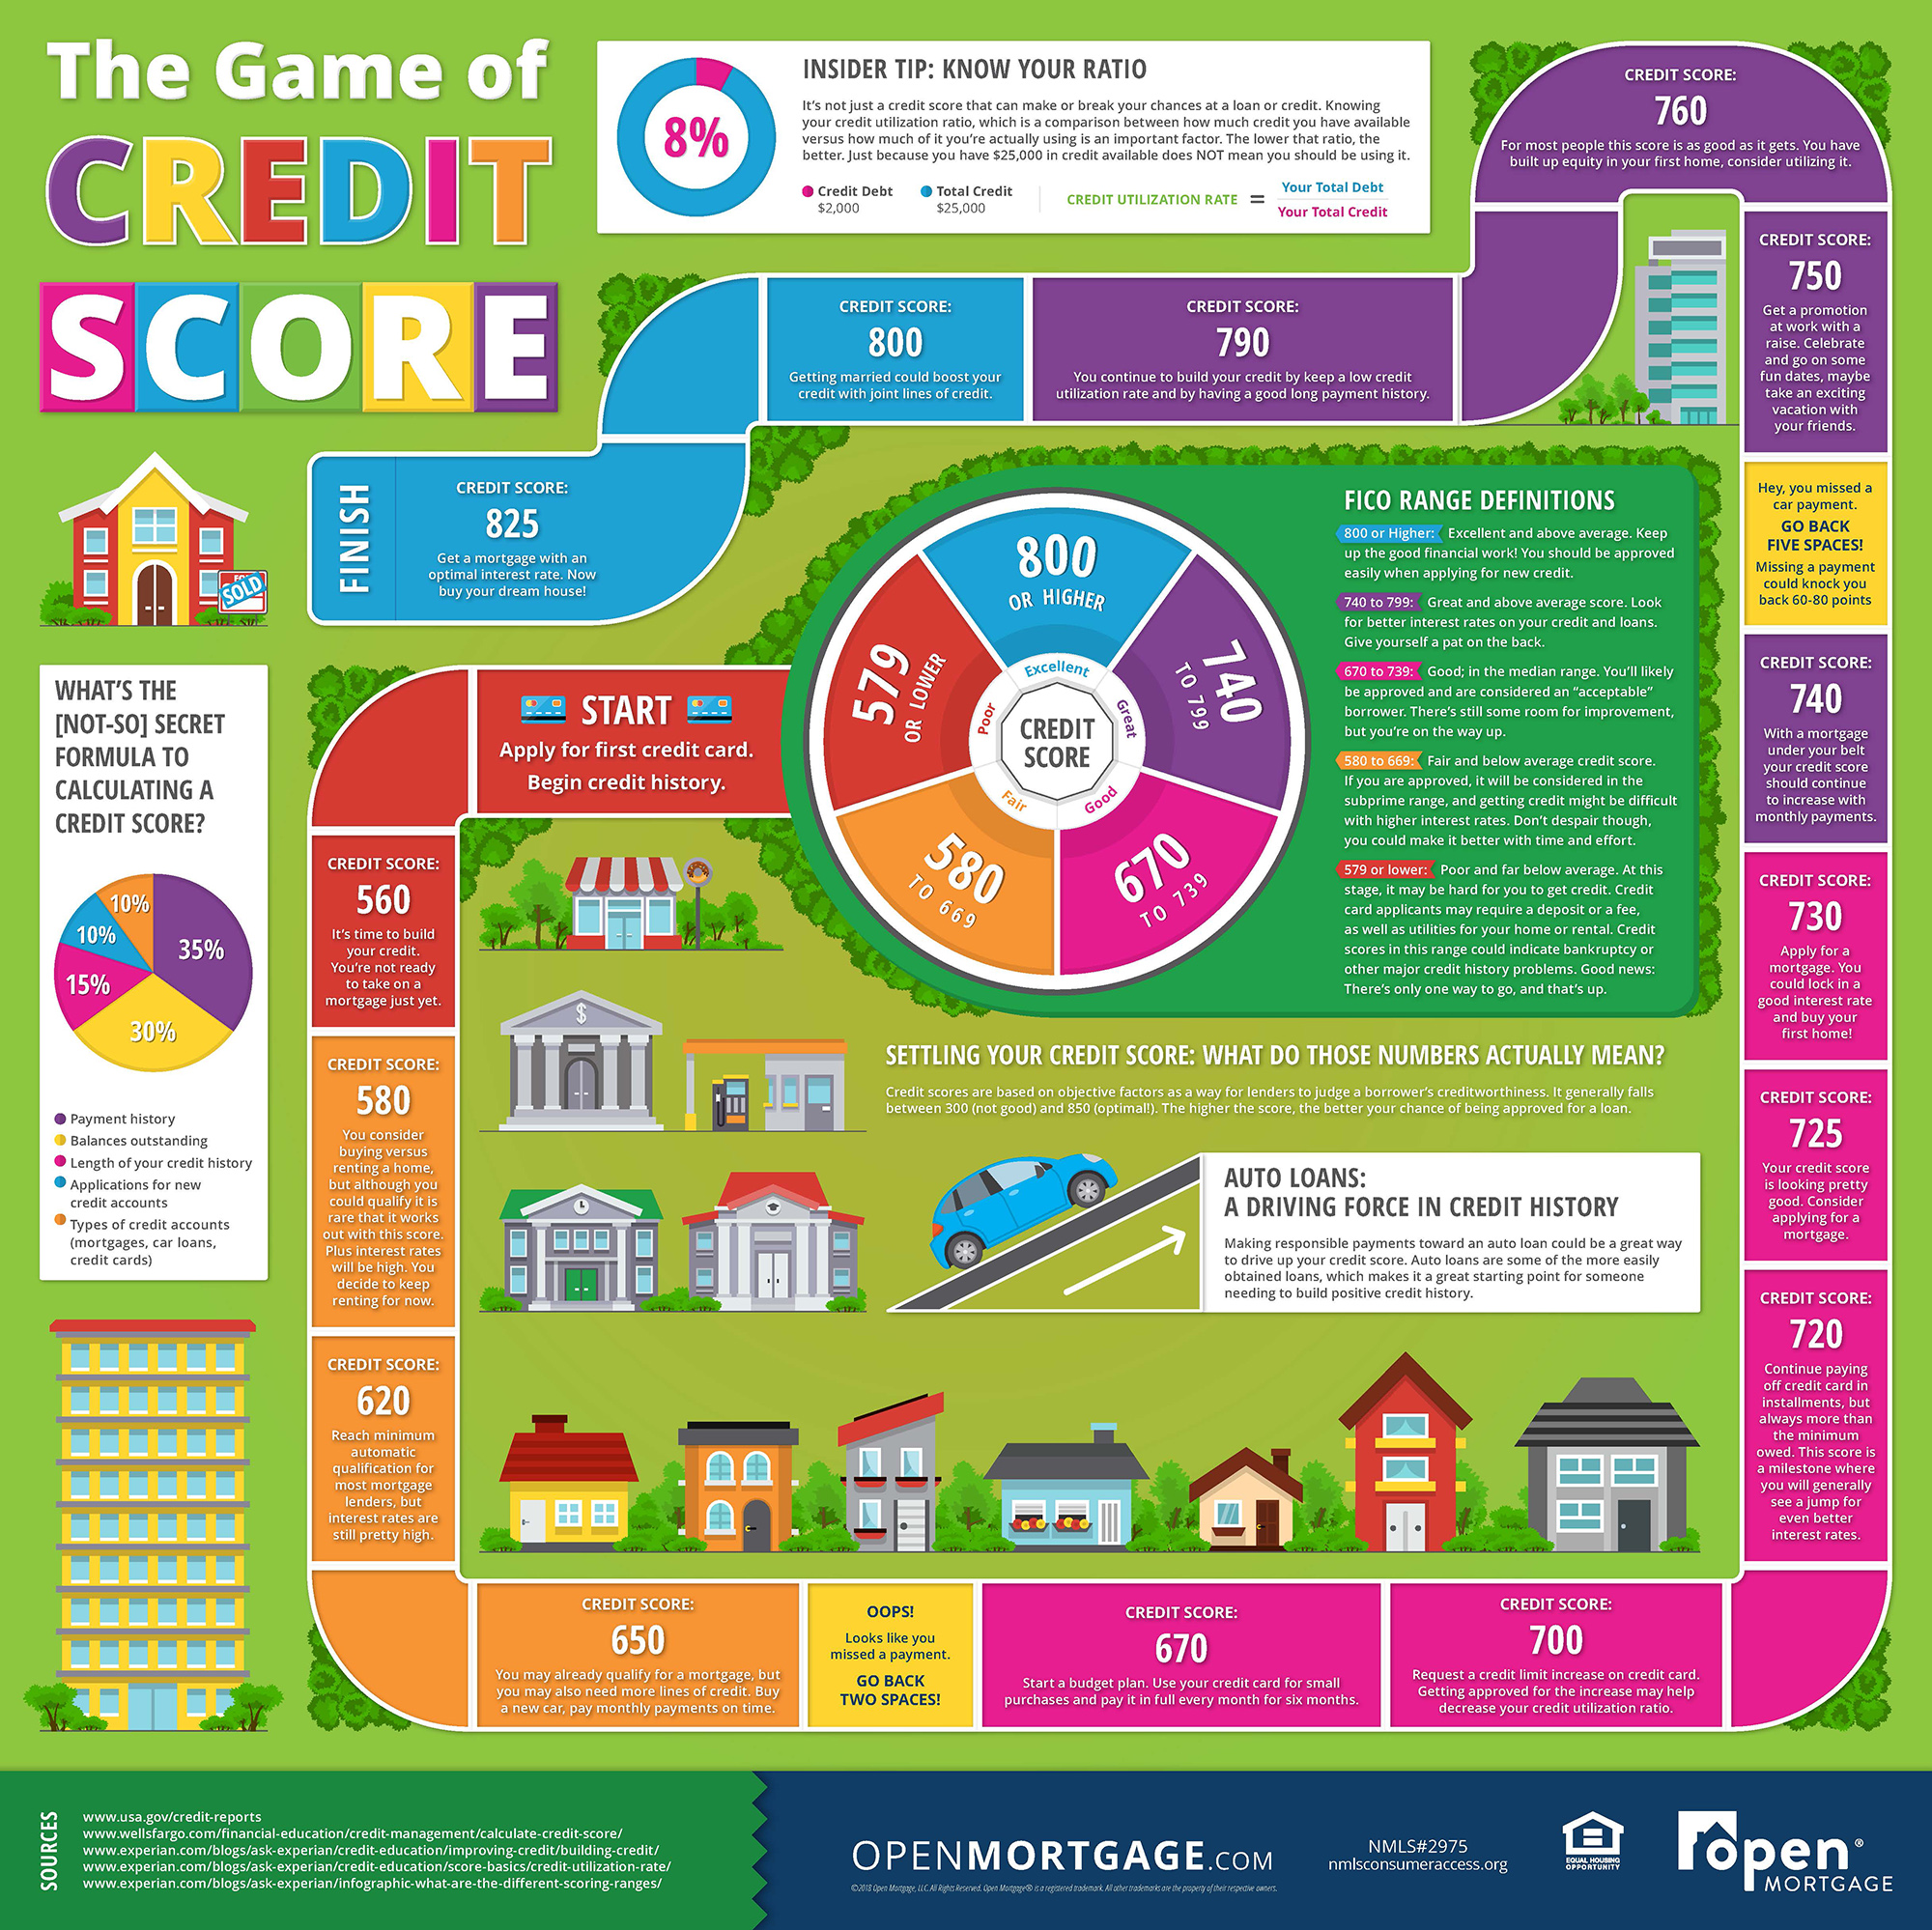 Open Mortgage: The Game of Credit Score